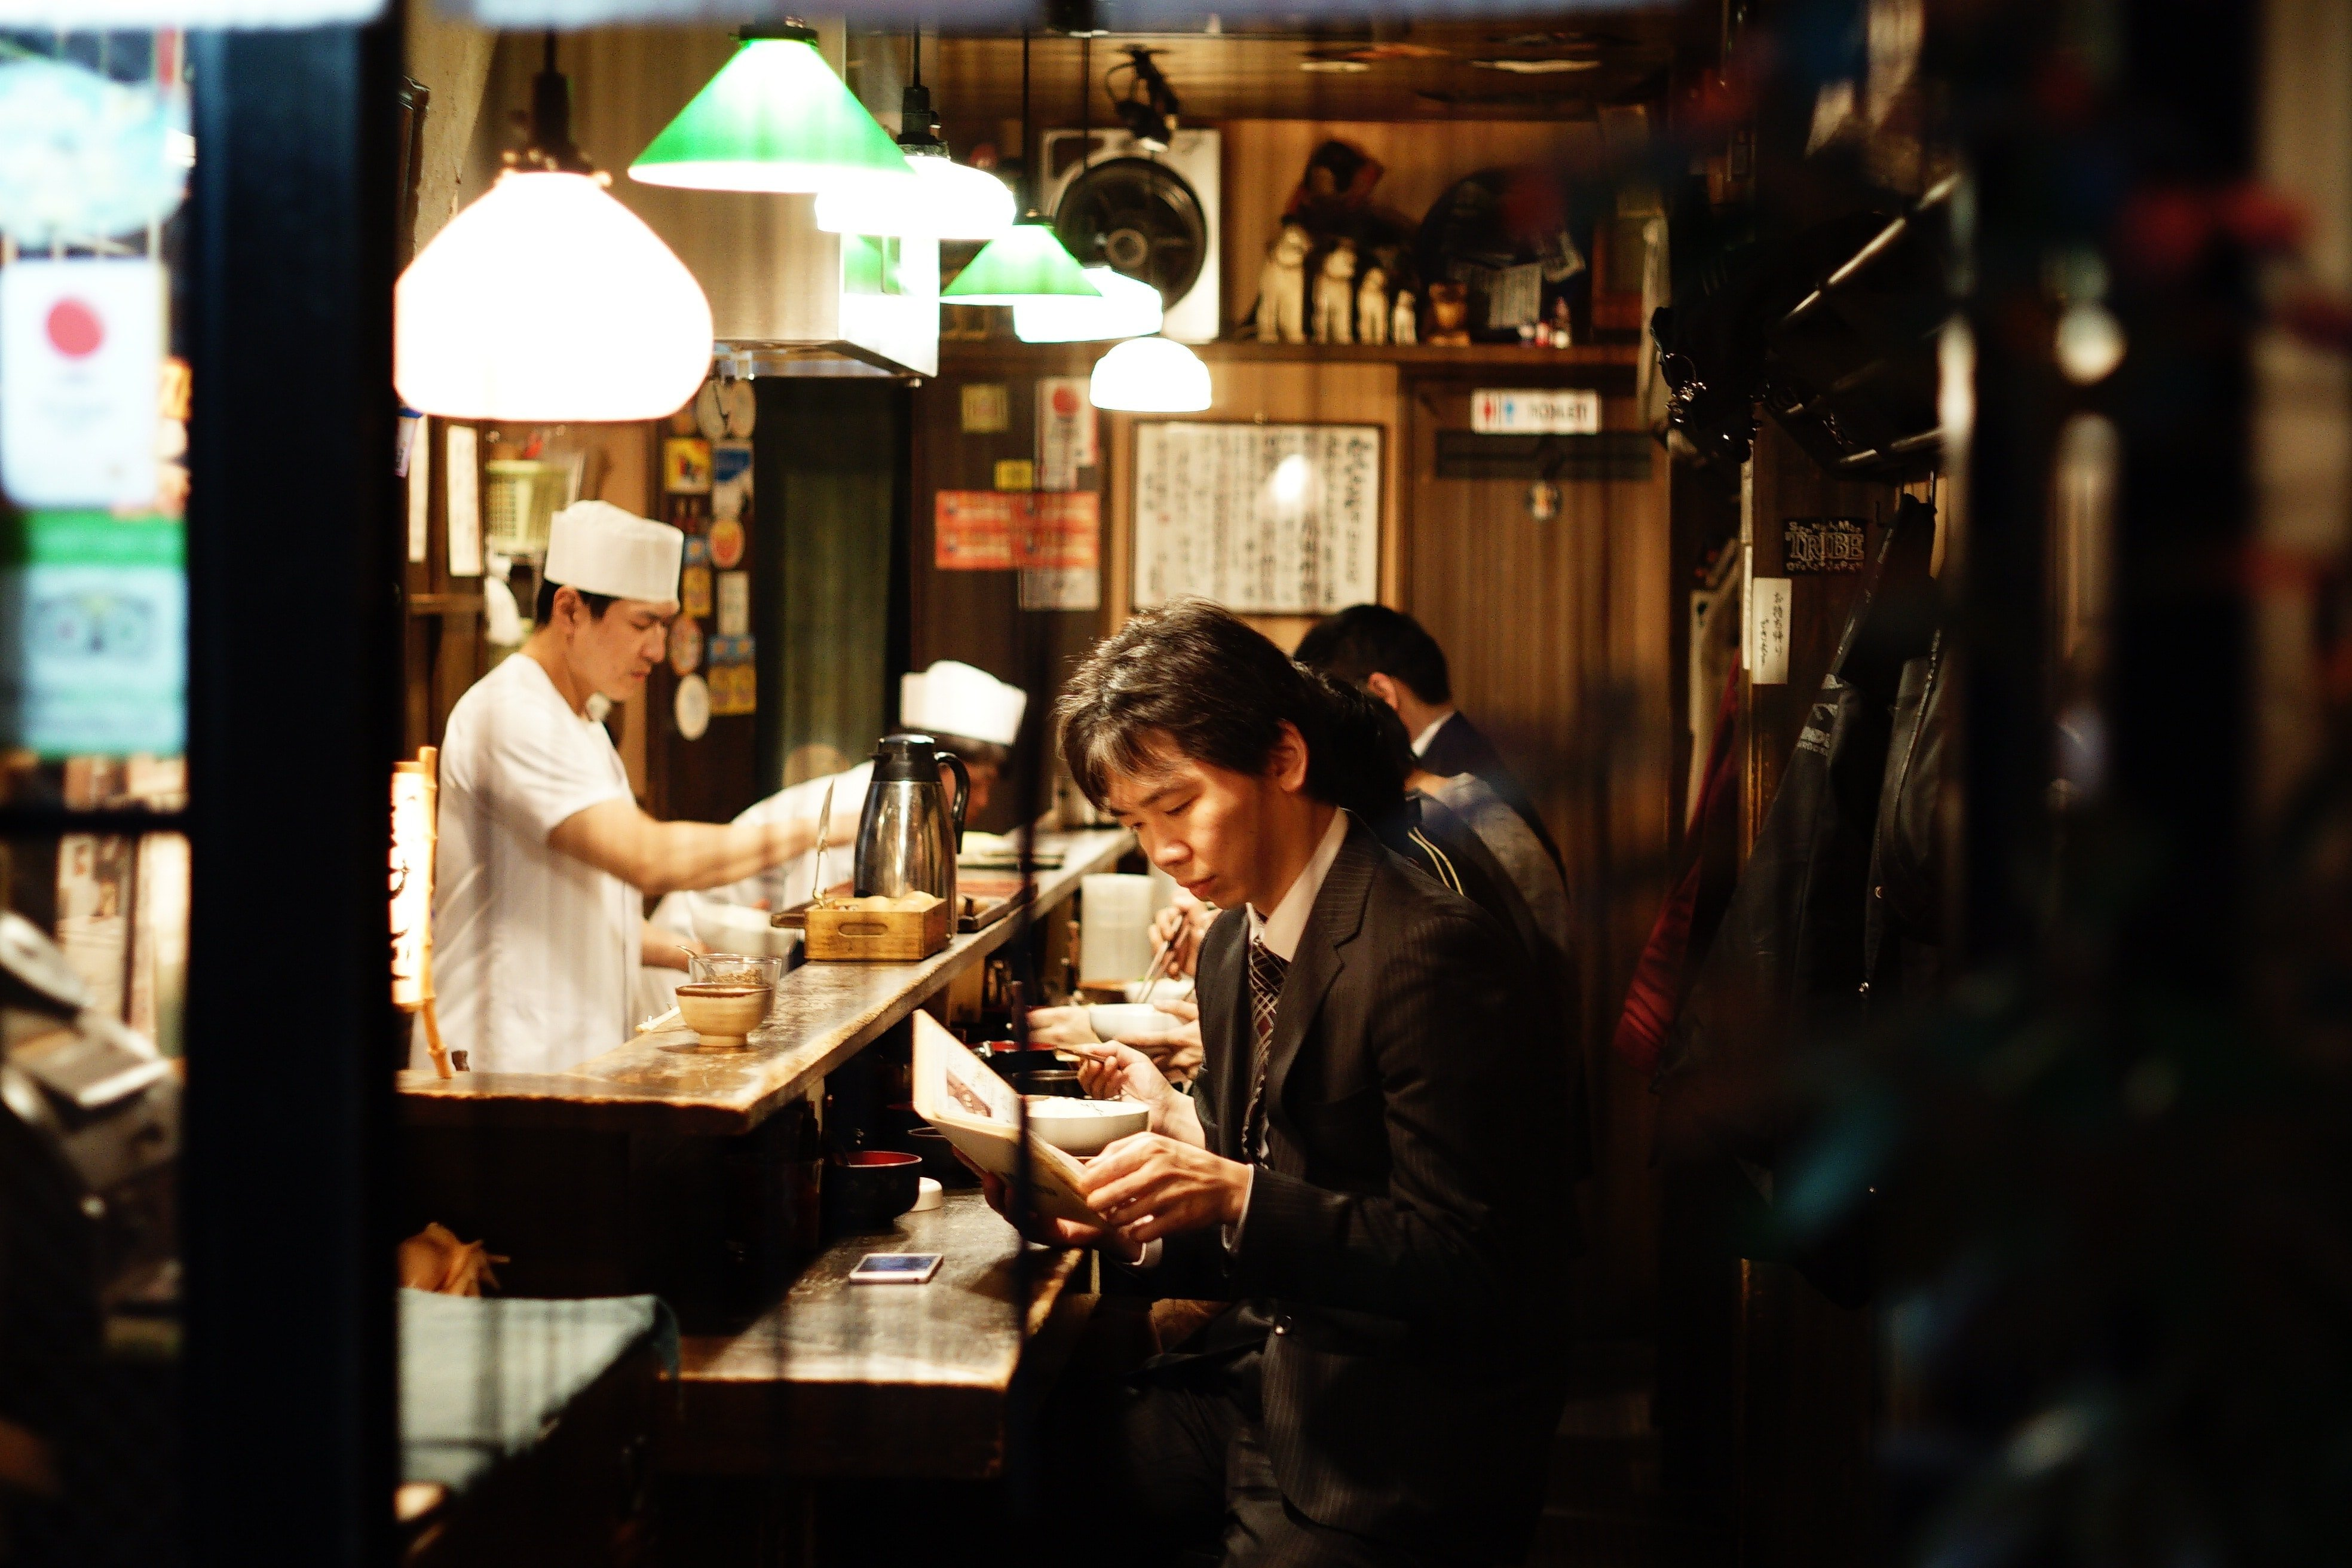 jaapnese sushi dinner restaurant fromlusttilldawn.com traveling to japan for the first time from lust till dawn